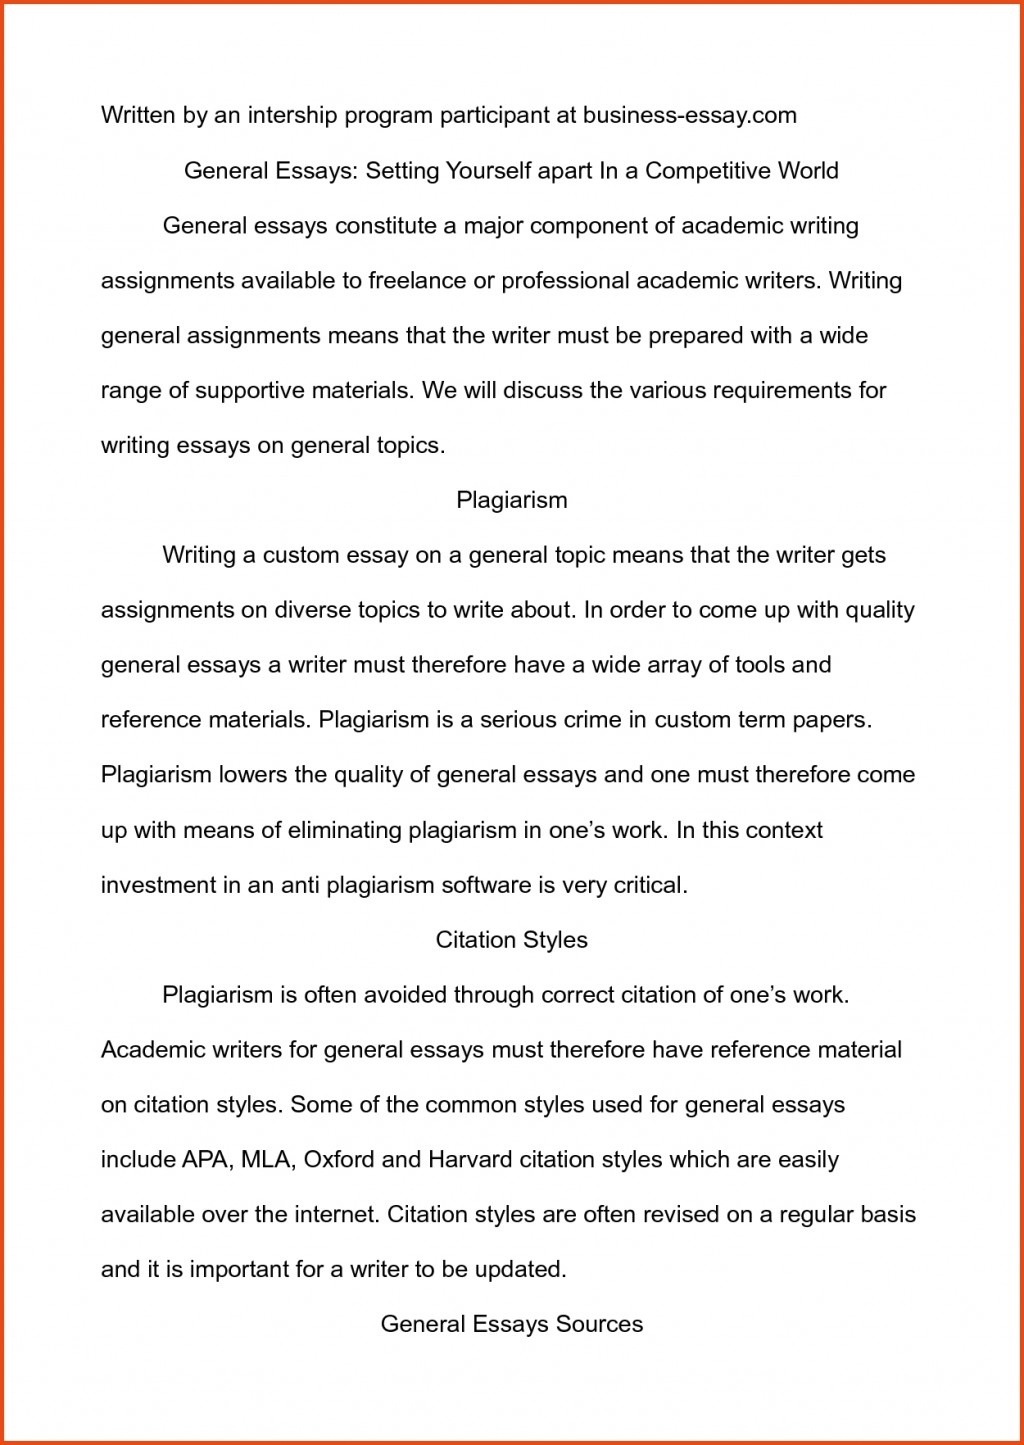 010 College Essays About Yourself Writings And Introducing Myself Introduce Intende Writing Fearsome Essay Example Examples A Application Large